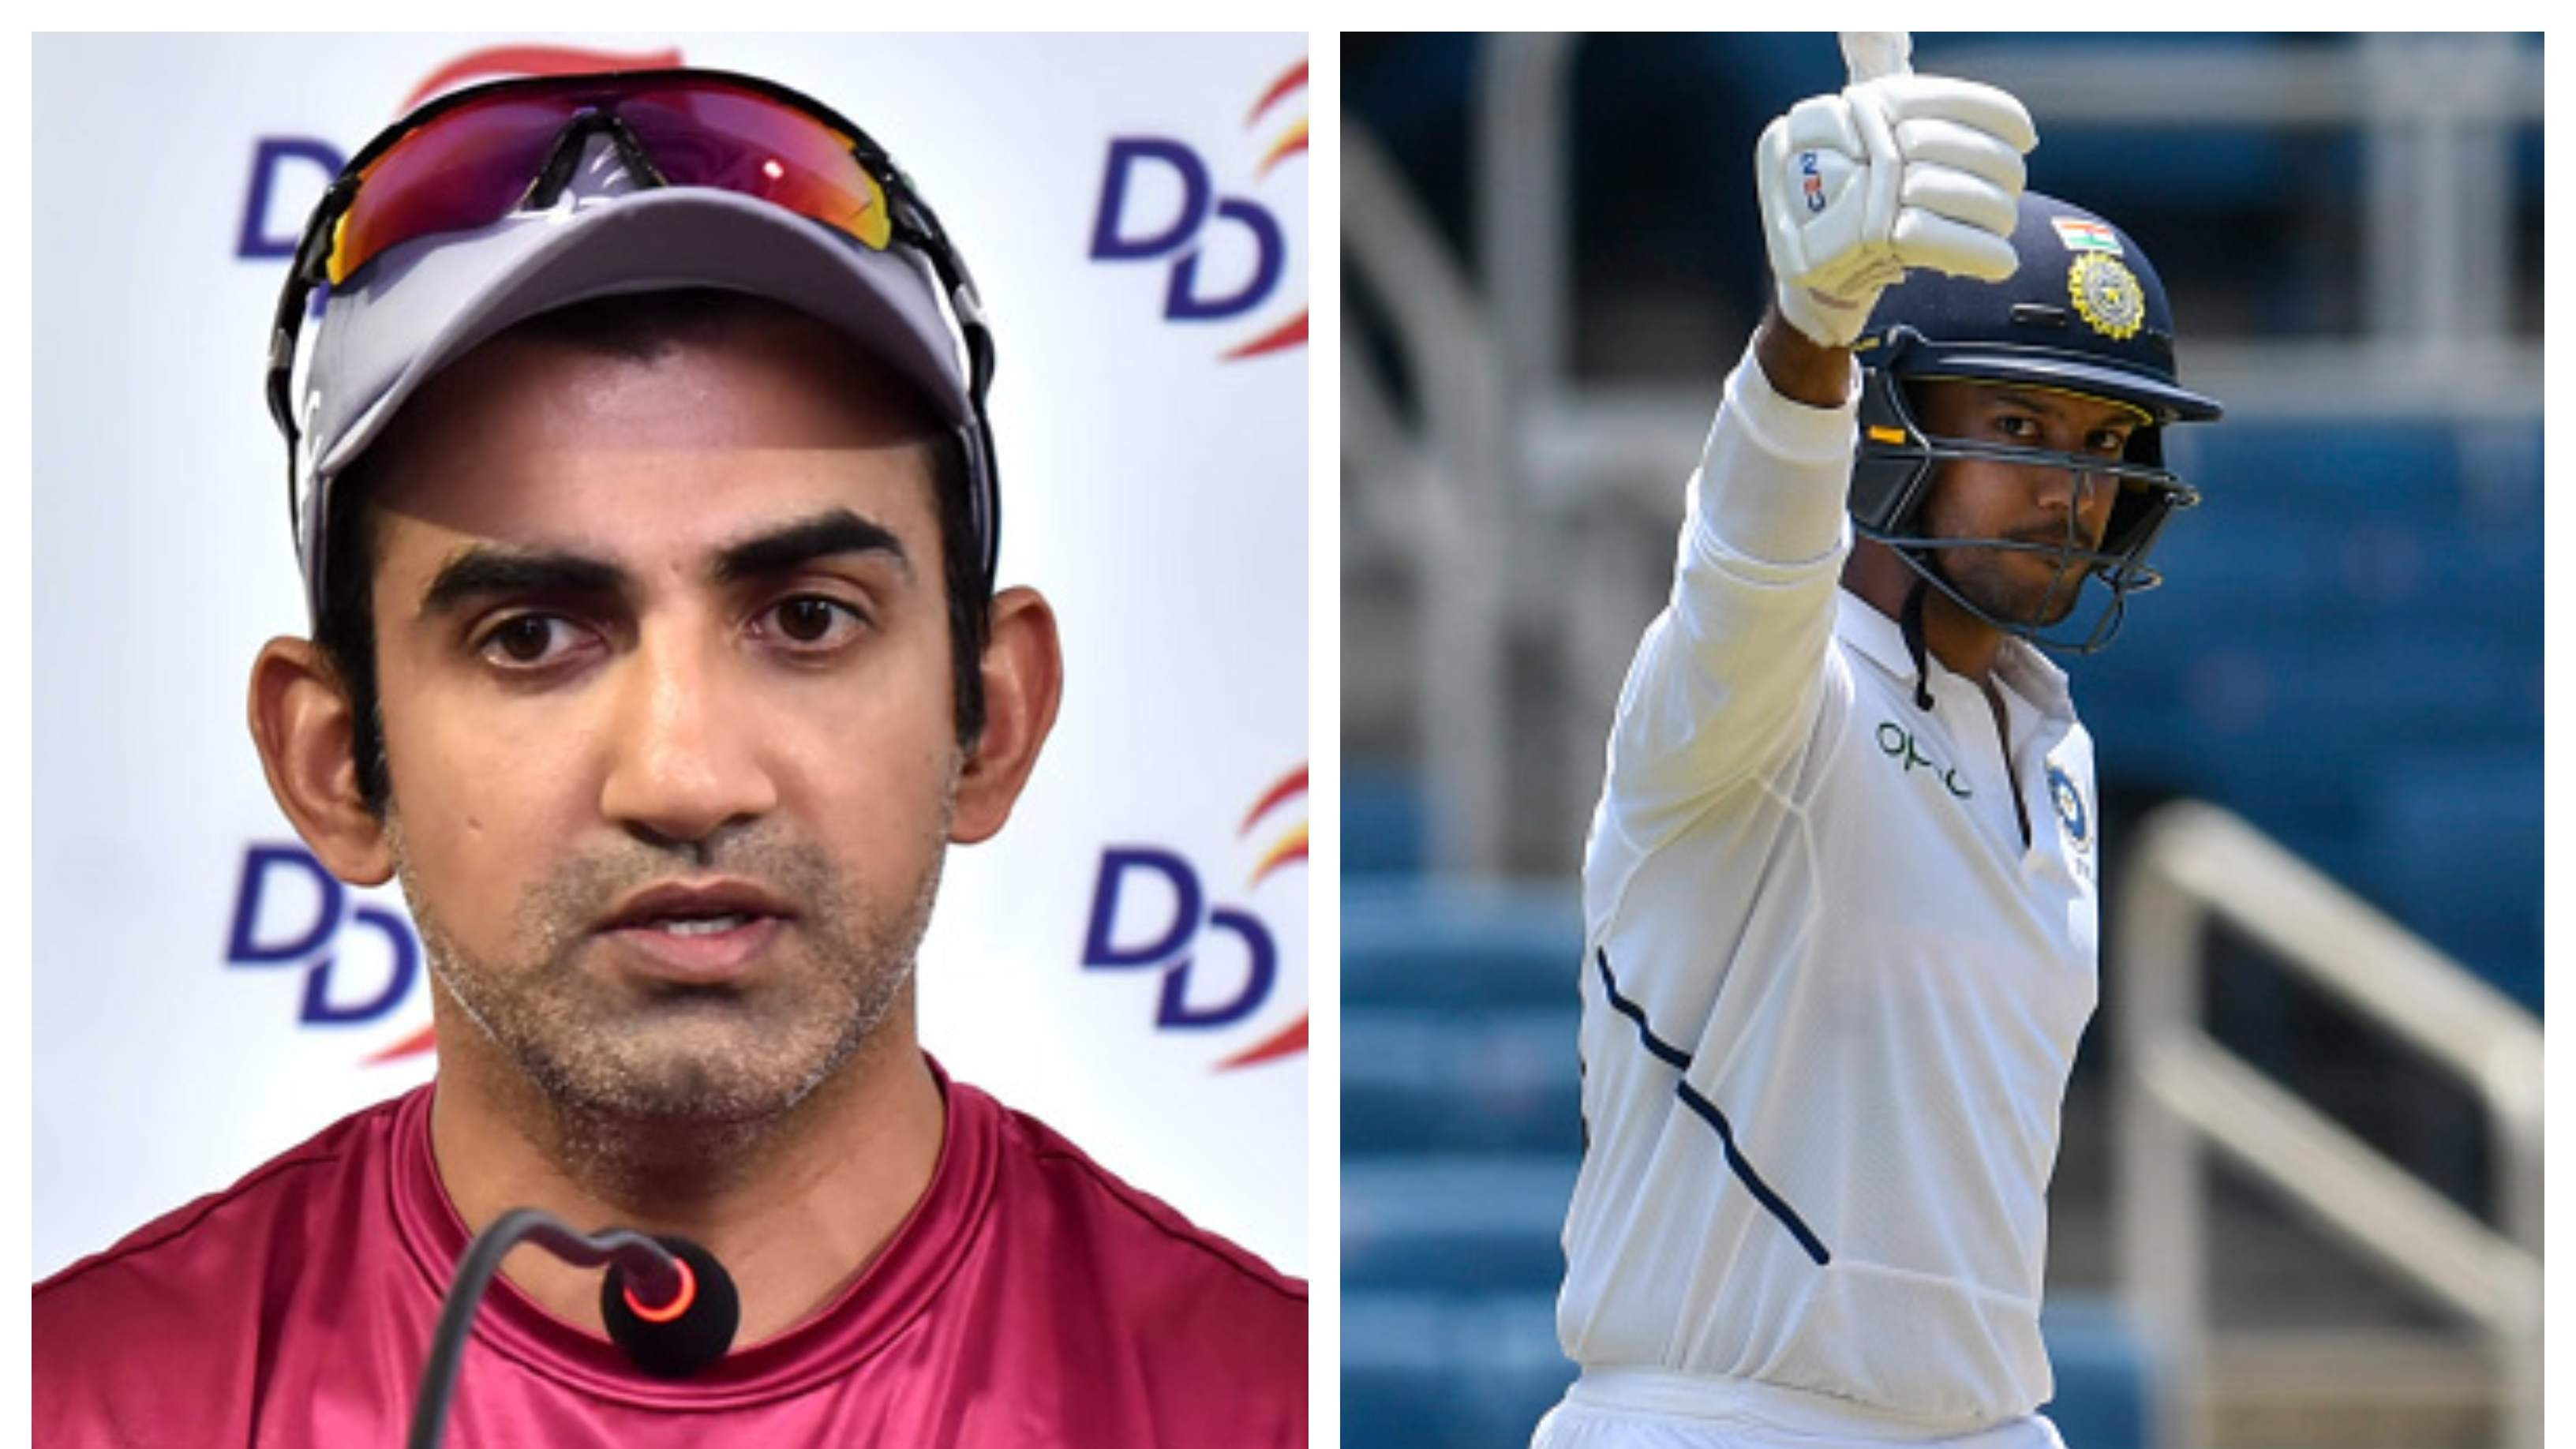 NZ v IND 2020: Gautam Gambhir pins his hopes on Mayank Agarwal to play a big role in Test series